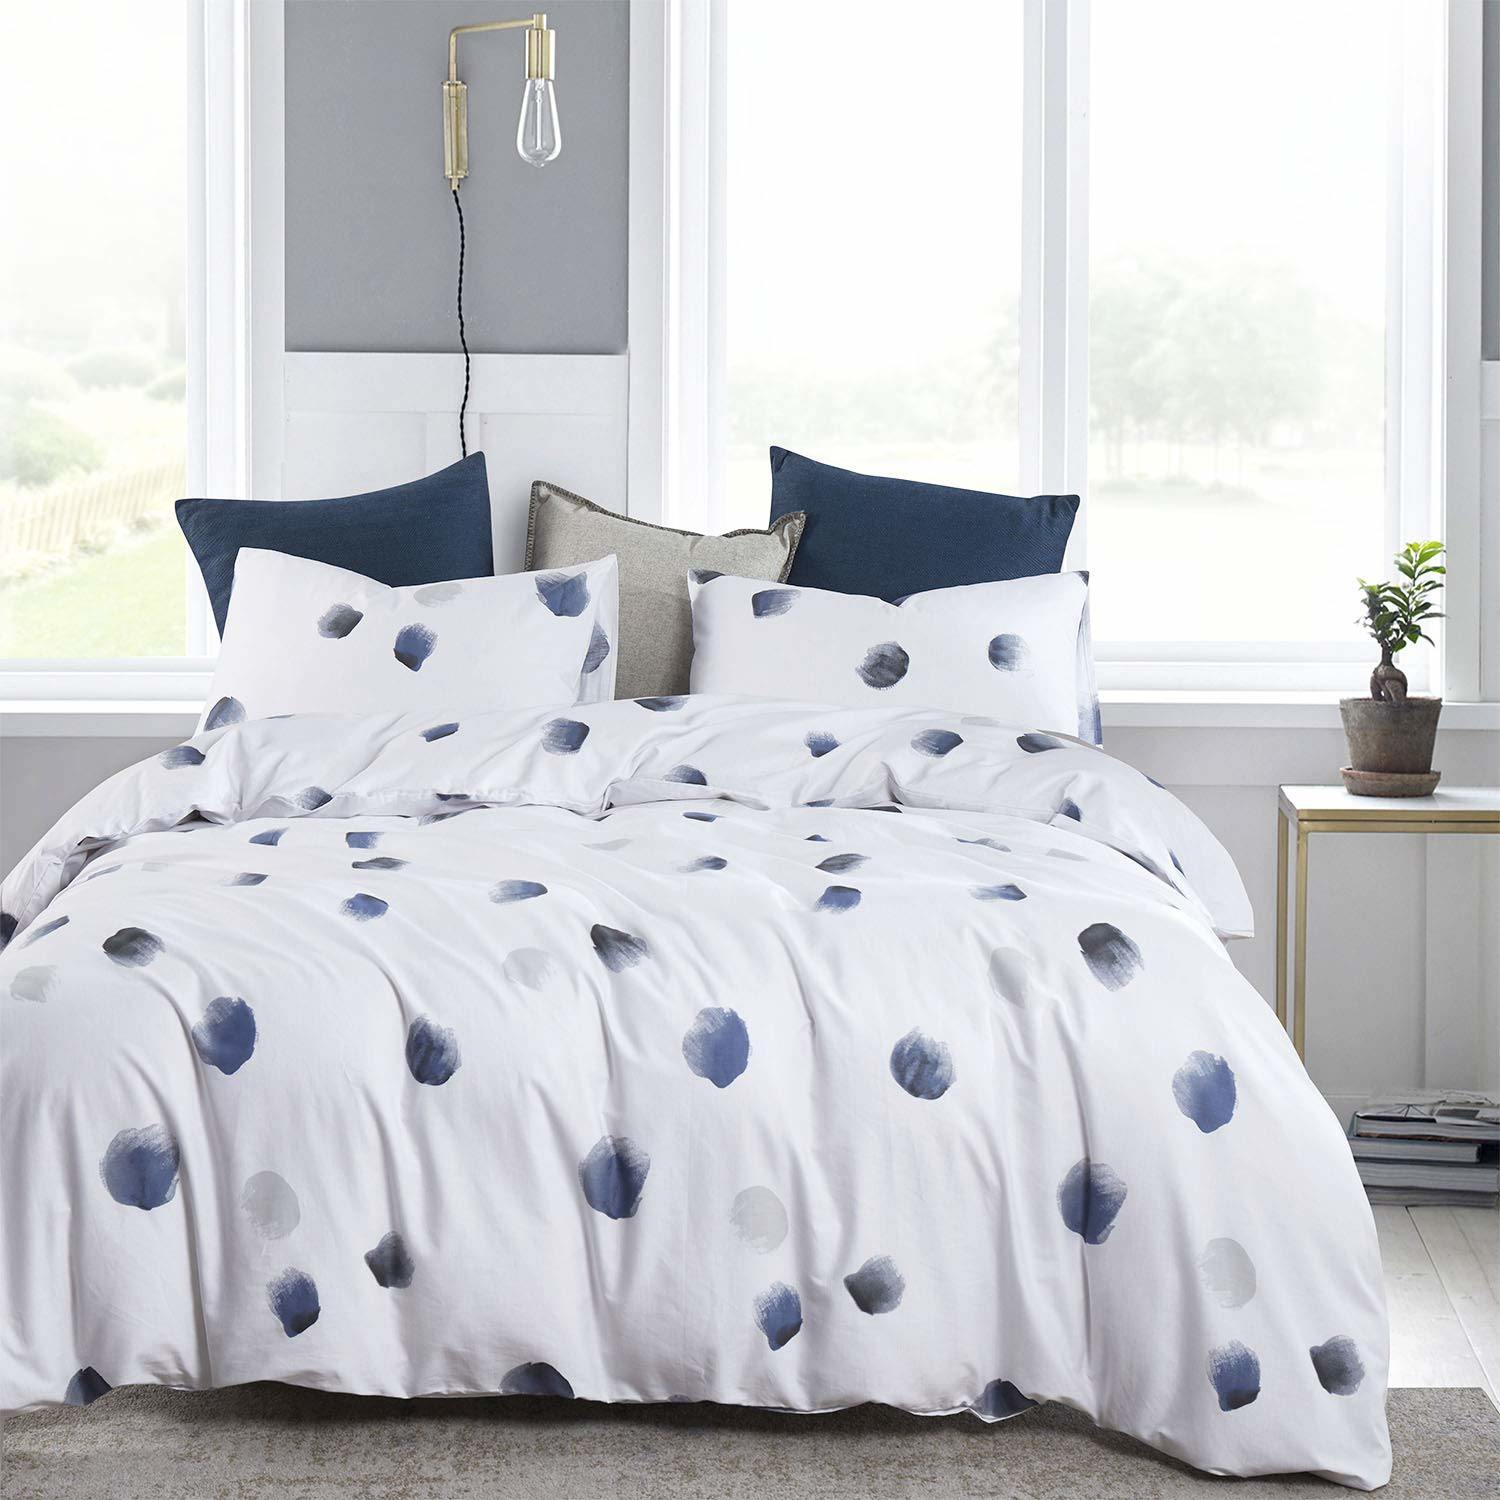 China Navy Blue And White Duvet Cover Set 100 Cotton Bedding Watercolor Brush Painting Dots Pattern Printed With Zipper Closure 3pcs Queen Size China Natural Linen And Bedding Set Price